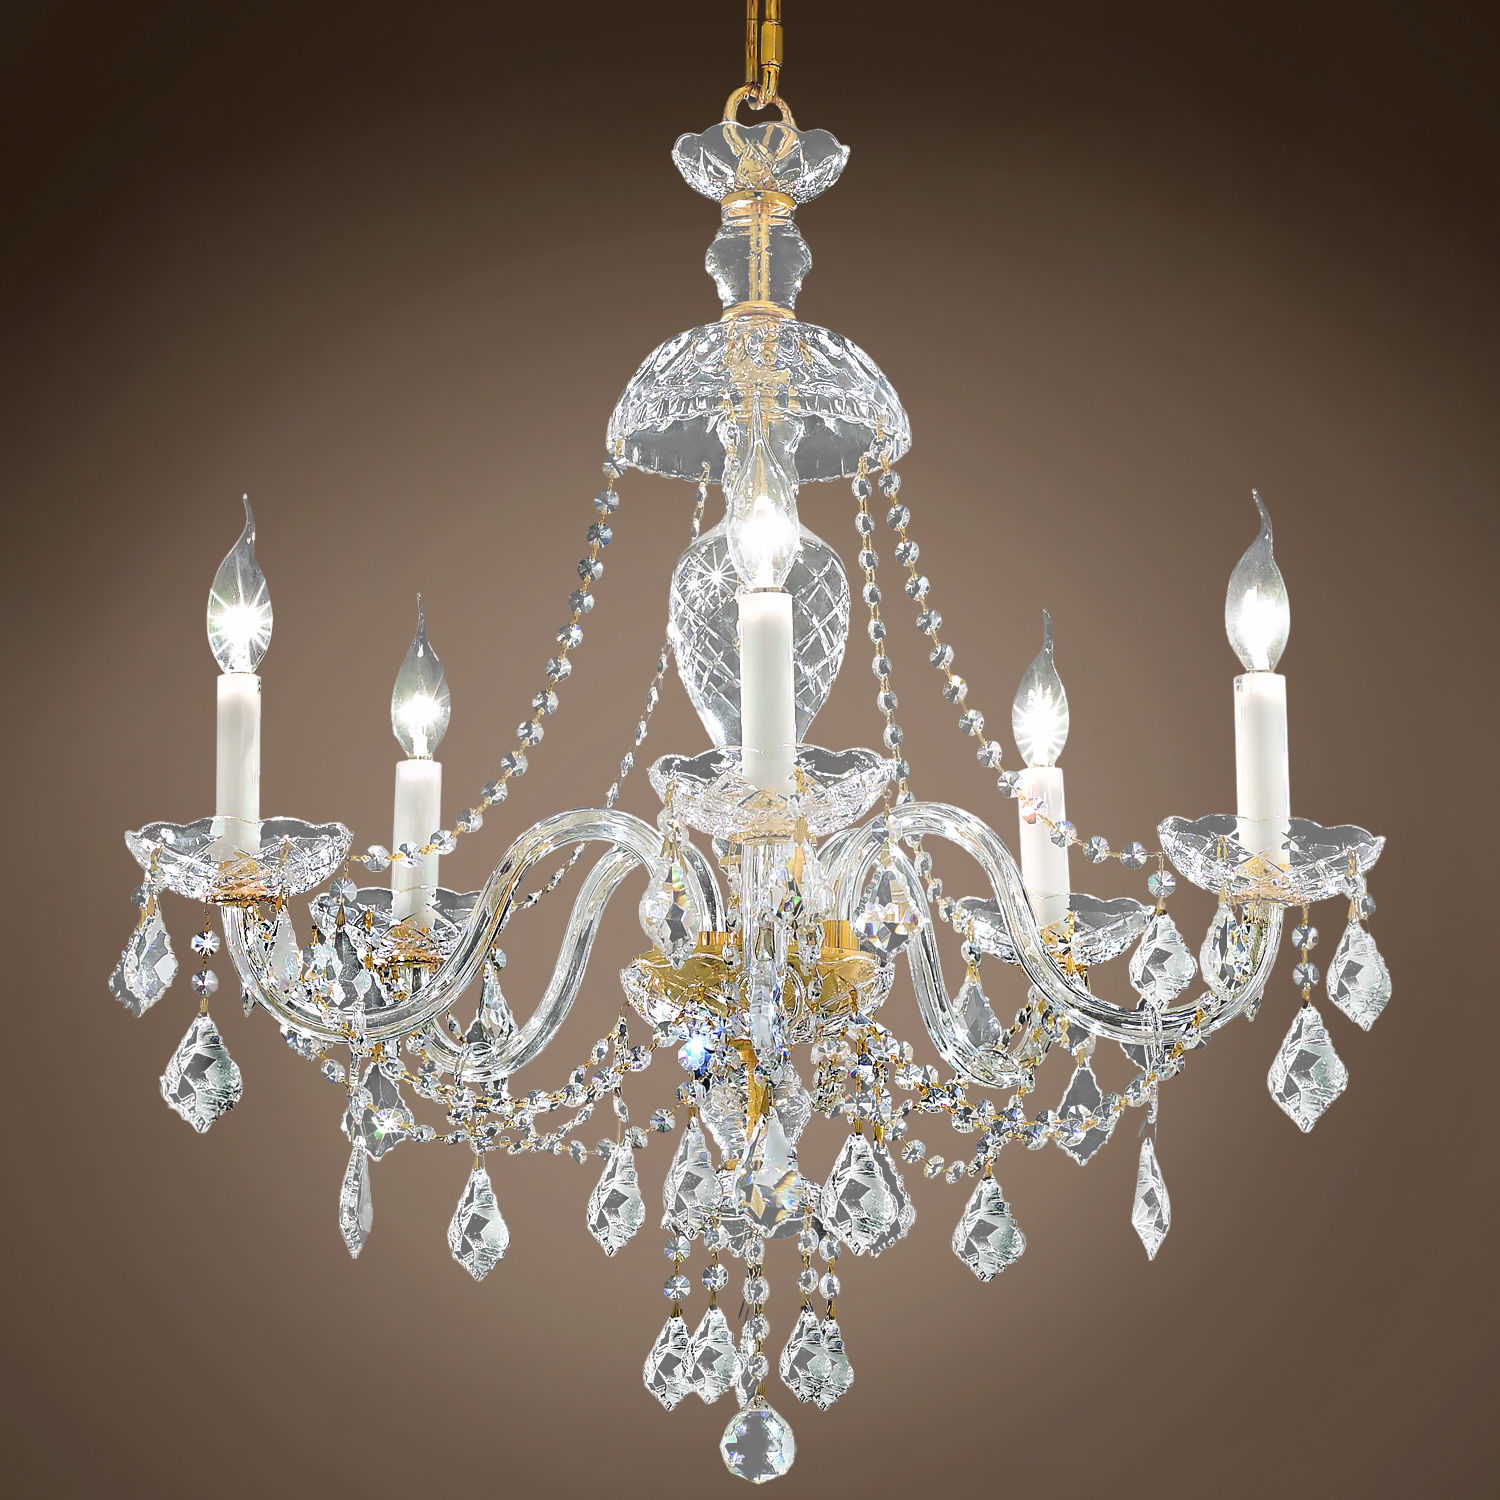 Crystal Where Can I Buy A Chandelier